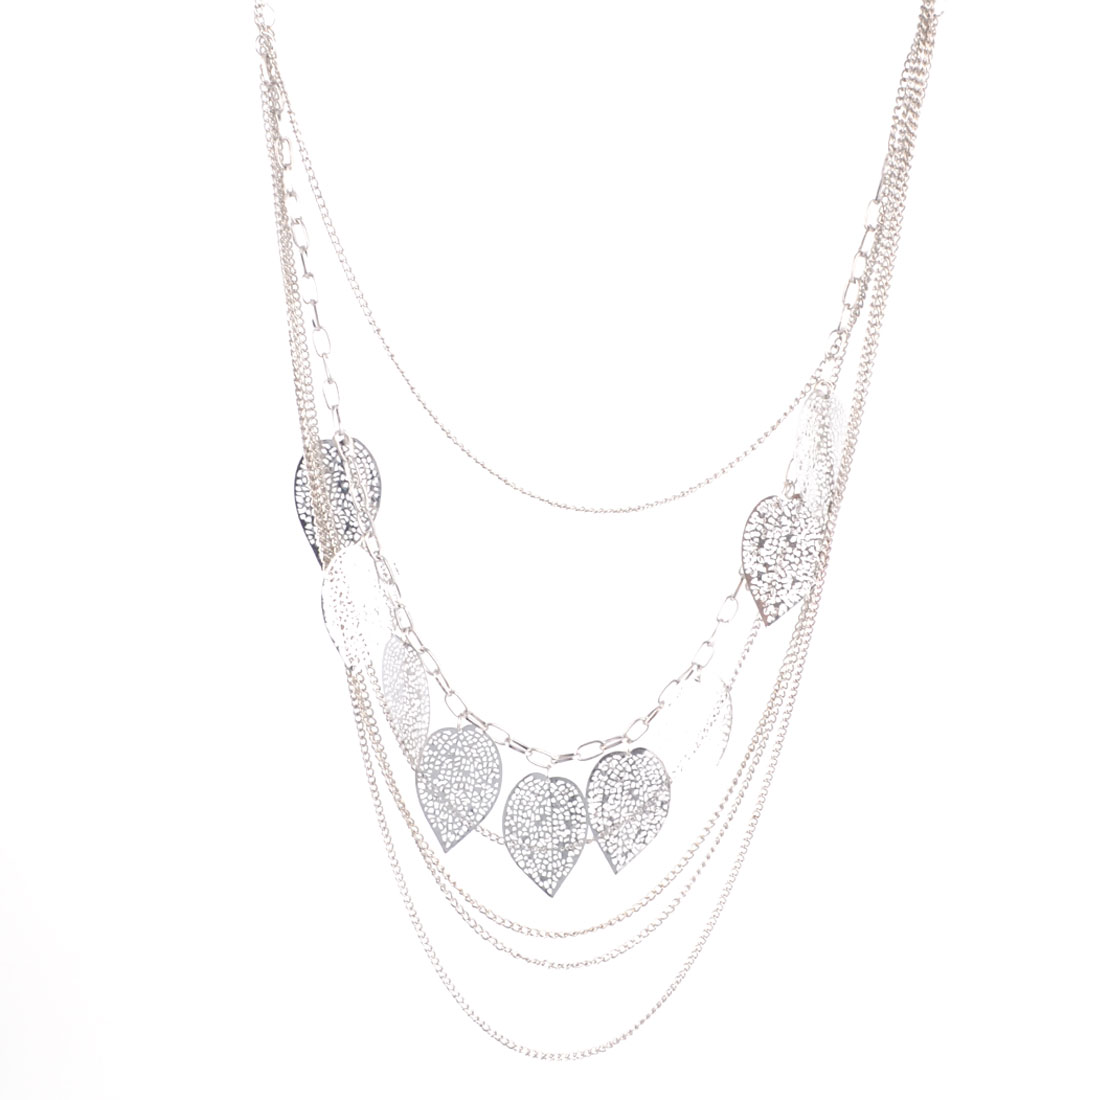 Ladies Silver Tone Metal Leaves Embellished Blouse Sweater Necklace Chain Ornament